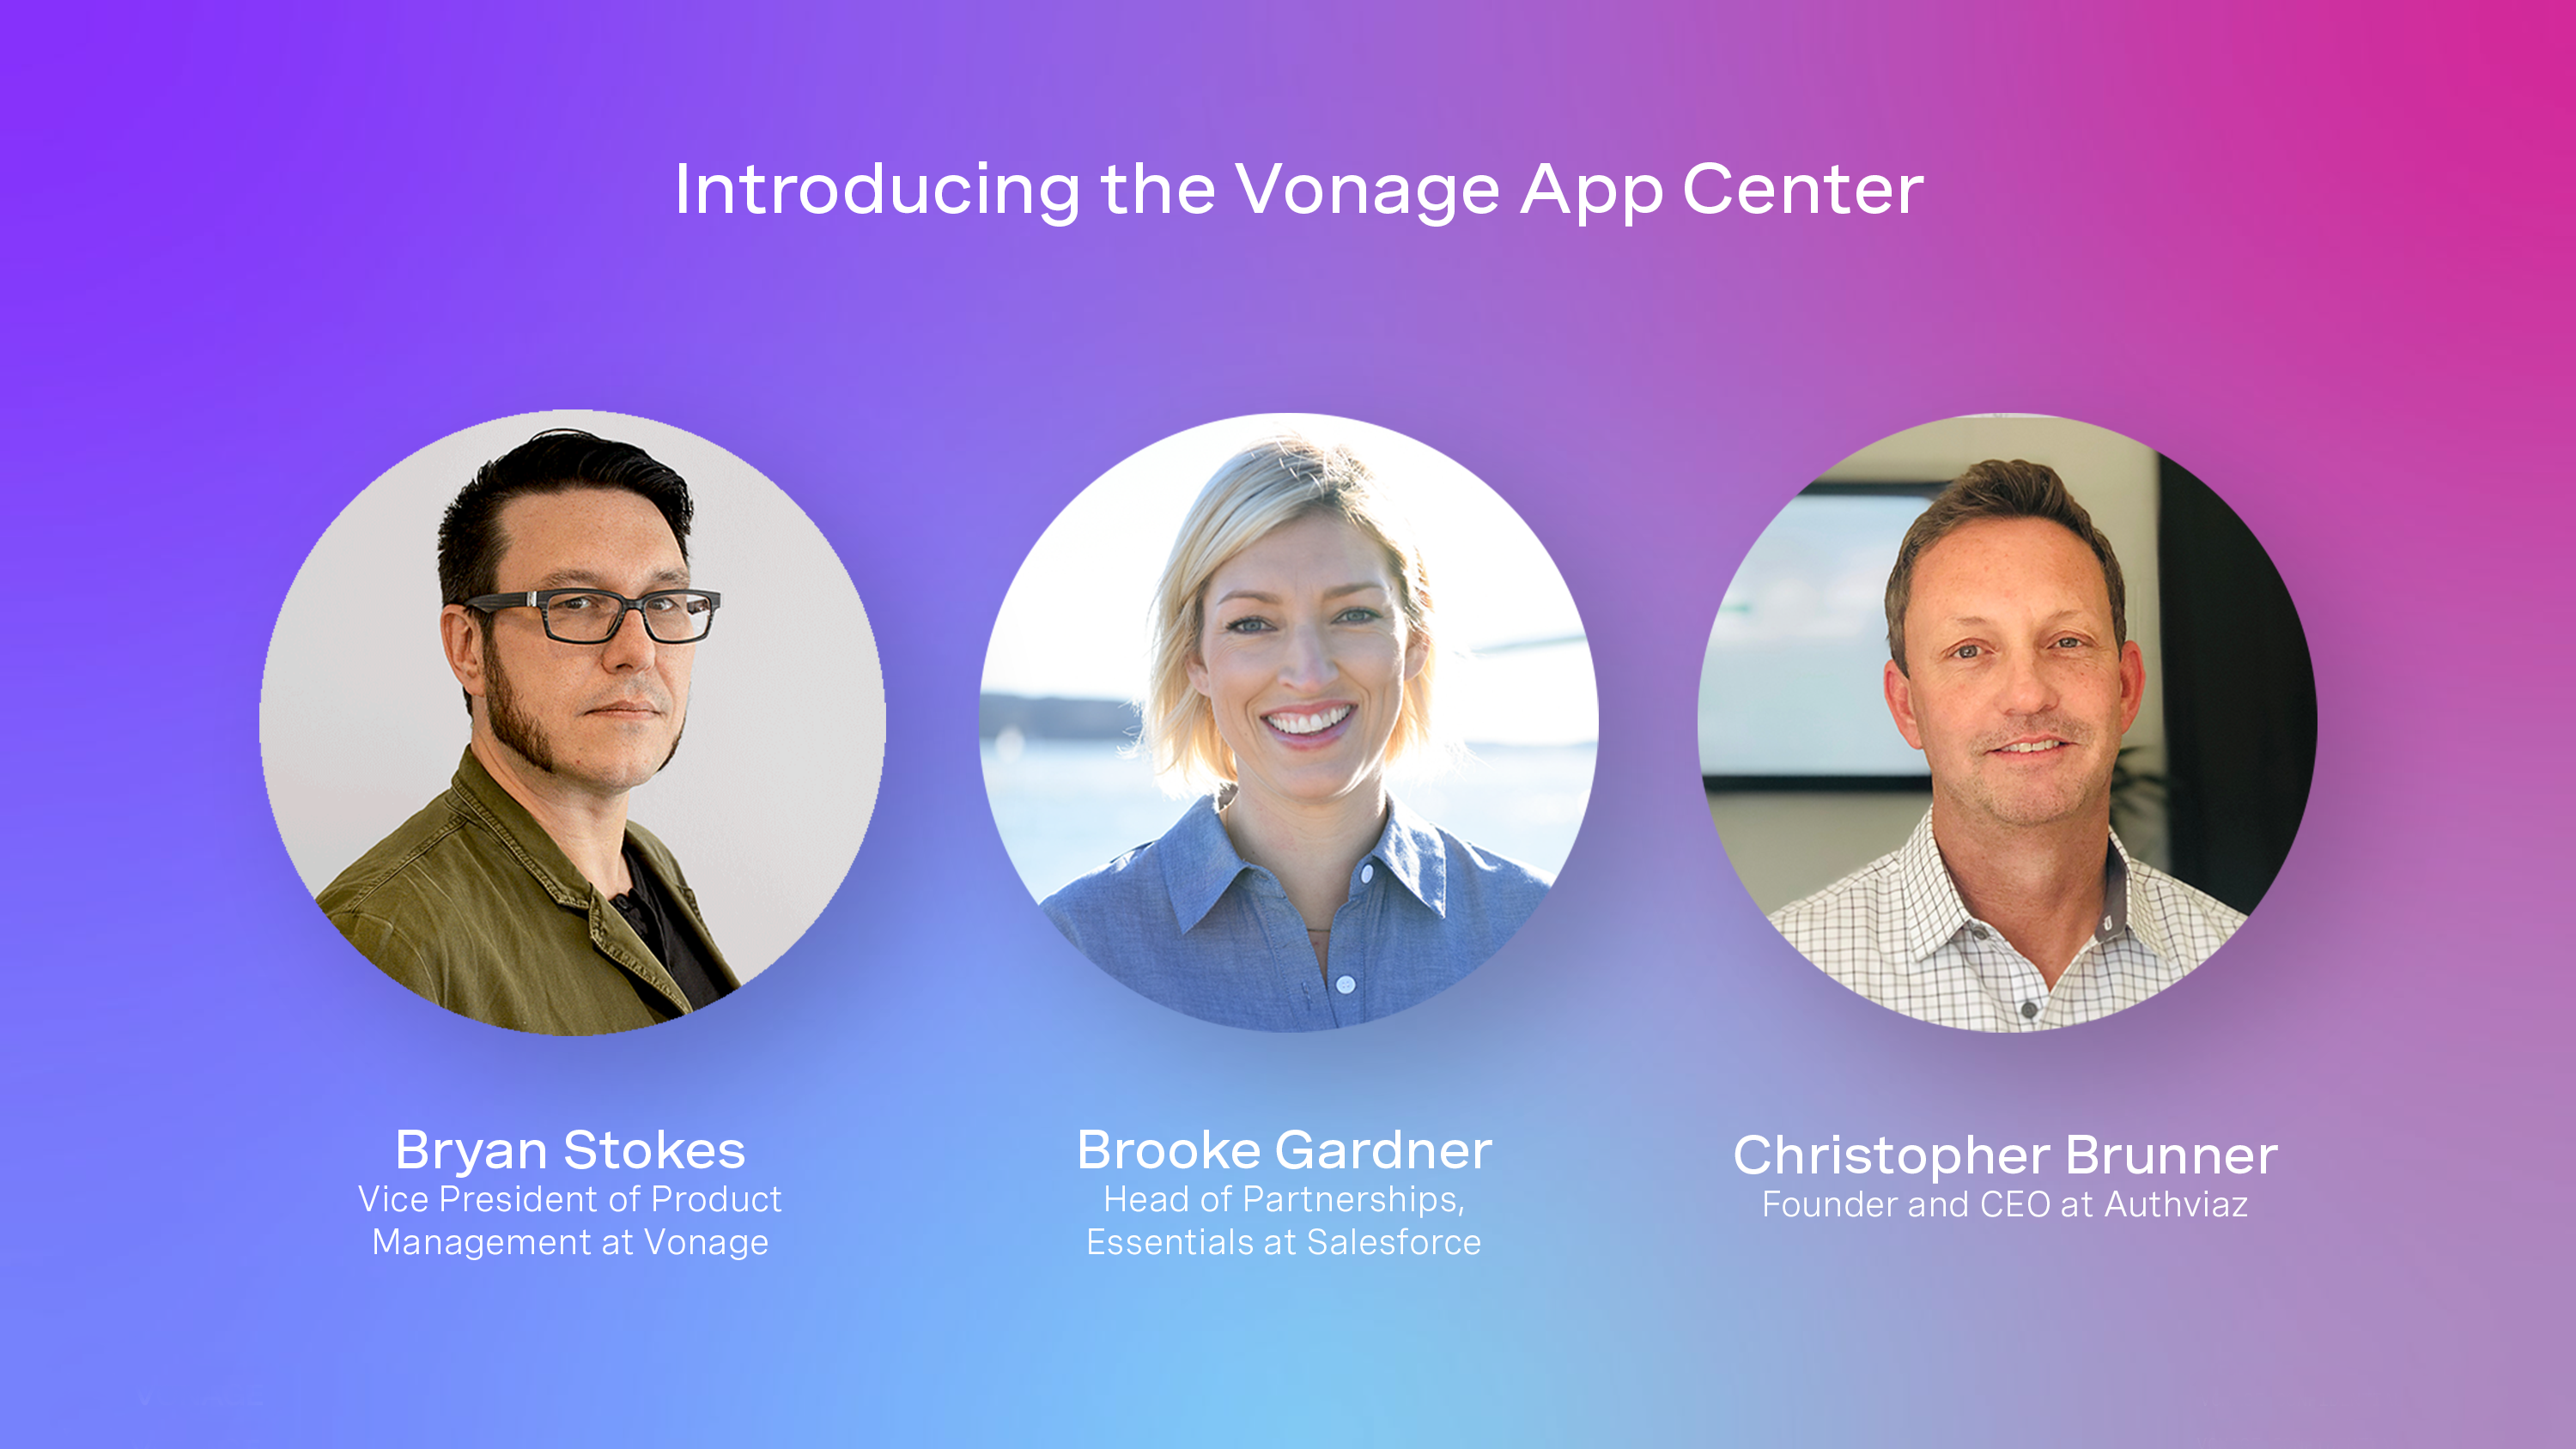 Video intro screen for Introducing the Vonage App Center featuring Bryan Stokes, Brooke Gardner and Christopher Brunner.